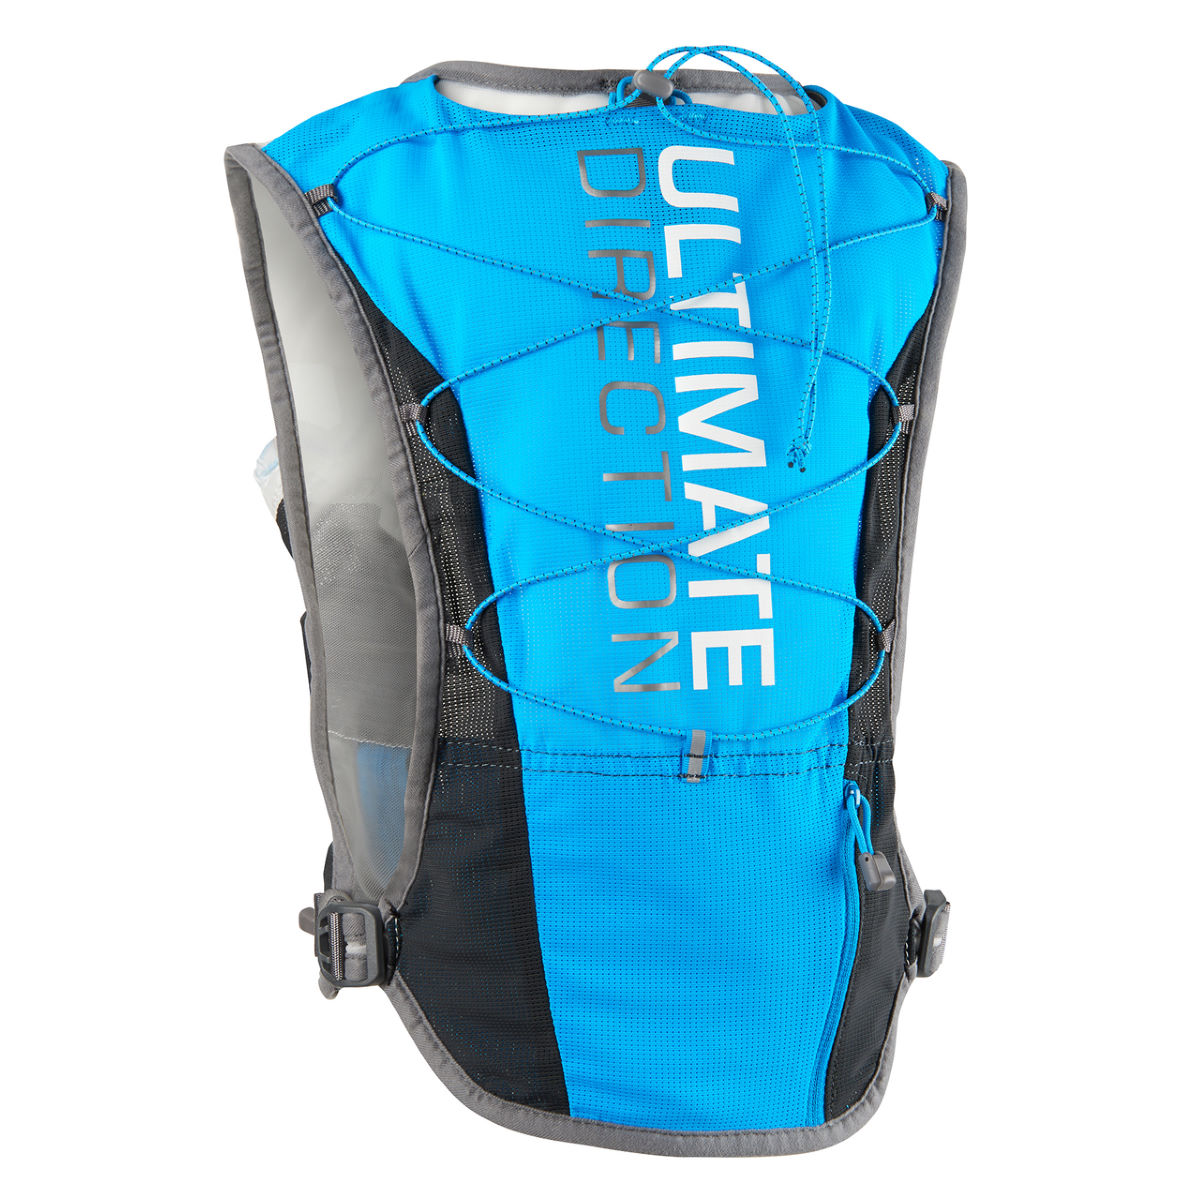 Sac à dos Ultimate Direction Scott Jurek Ultra 3.0 - S Noir Sacs d'hydratation